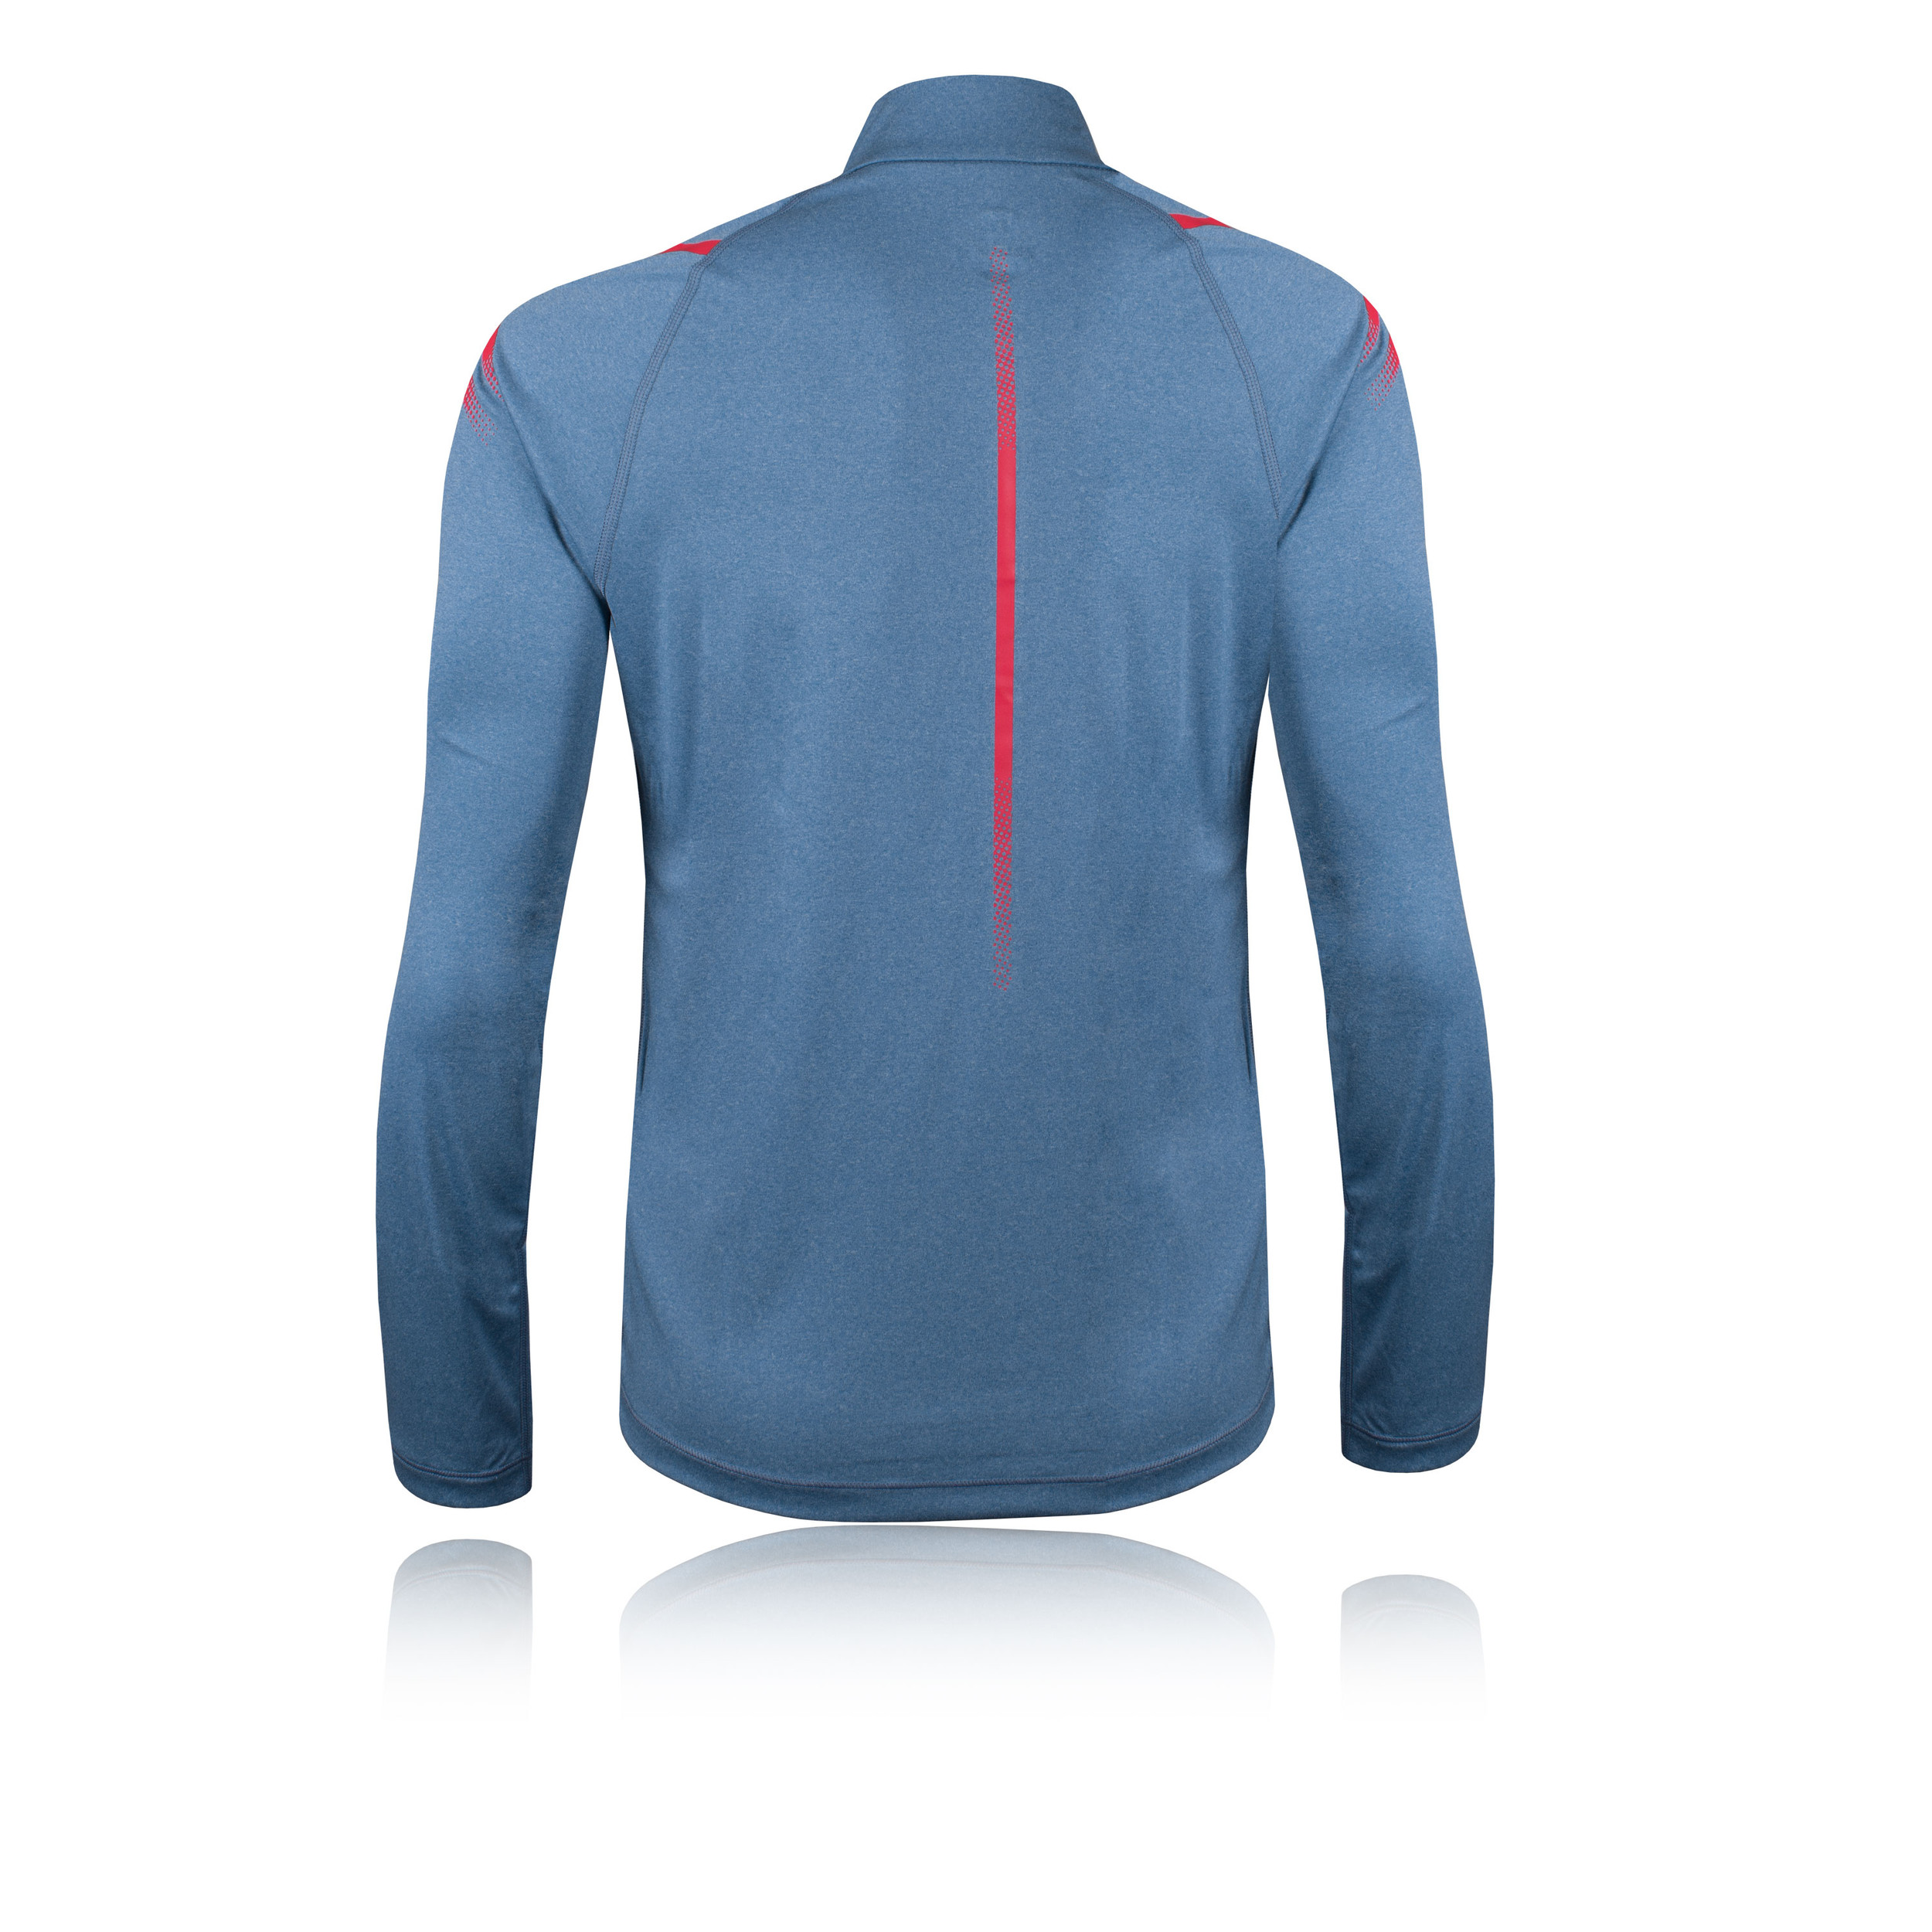 Asics Womens Icon Long Sleeved 1/2 Zip Top Blue Sports